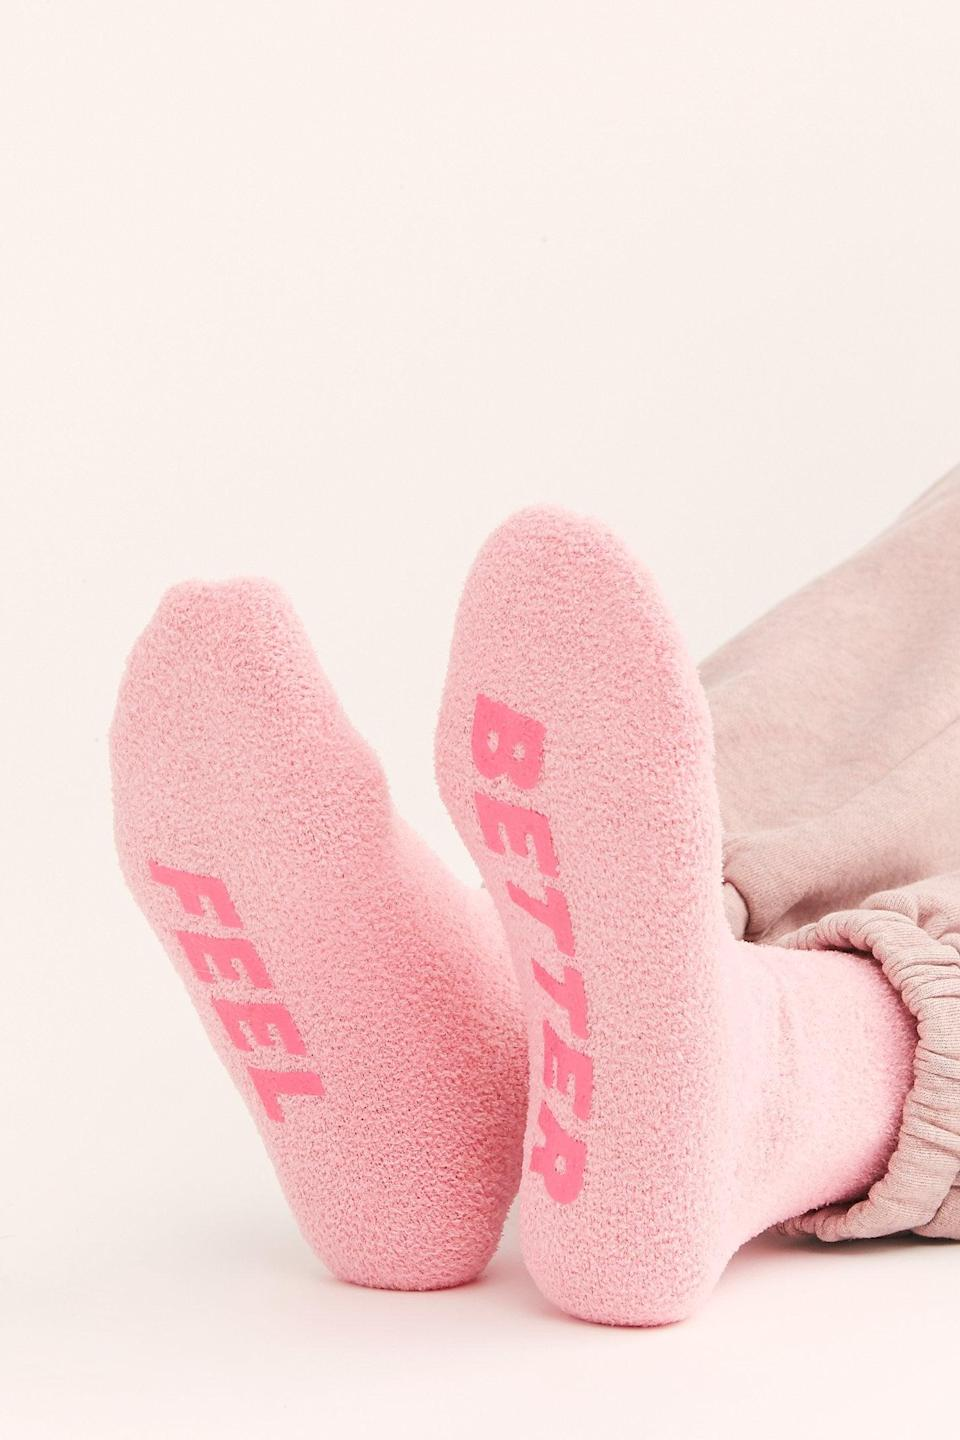 """<p>These <a href=""""https://www.popsugar.com/buy/Feel-Better-Cozy-Grip-Socks-527143?p_name=Feel%20Better%20Cozy%20Grip%20Socks&retailer=freepeople.com&pid=527143&price=12&evar1=fab%3Aus&evar9=45460327&evar98=https%3A%2F%2Fwww.popsugar.com%2Ffashion%2Fphoto-gallery%2F45460327%2Fimage%2F46977993%2FFeel-Better-Cozy-Grip-Socks&list1=shopping%2Cgifts%2Cfree%20people%2Choliday%2Cgift%20guide%2Cgifts%20for%20women&prop13=api&pdata=1"""" class=""""link rapid-noclick-resp"""" rel=""""nofollow noopener"""" target=""""_blank"""" data-ylk=""""slk:Feel Better Cozy Grip Socks"""">Feel Better Cozy Grip Socks</a> ($12) make a great stocking stuffer.</p>"""